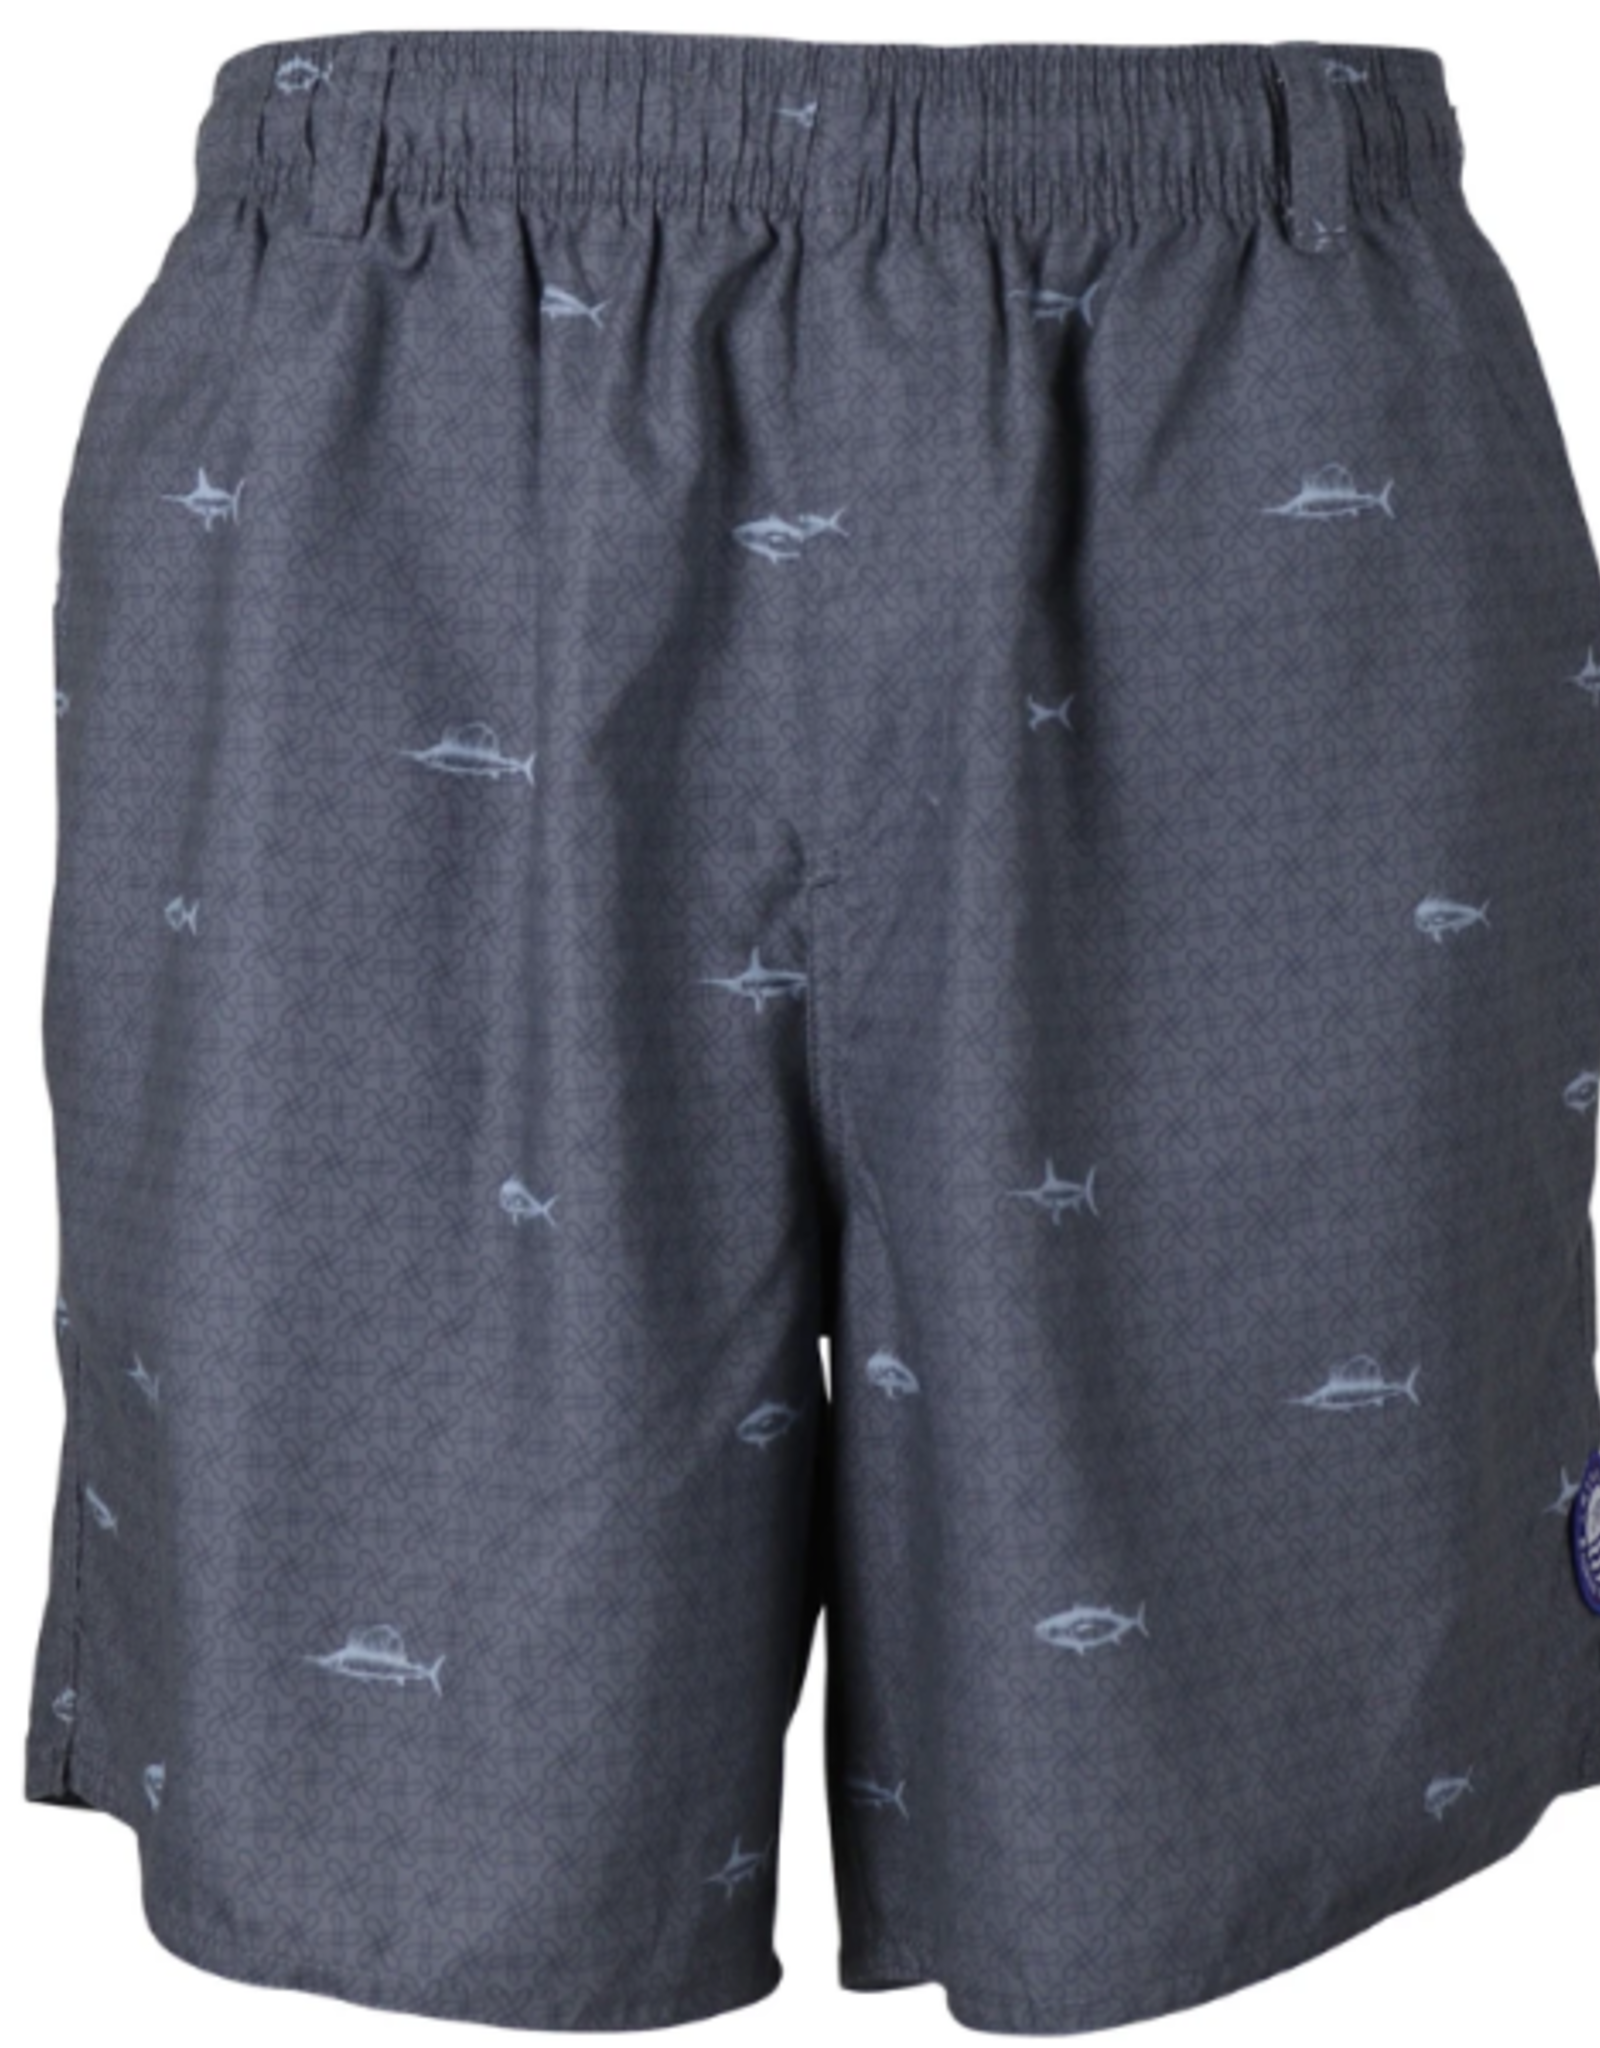 Aftco. Sidecaster Swim Trunks Charcoal